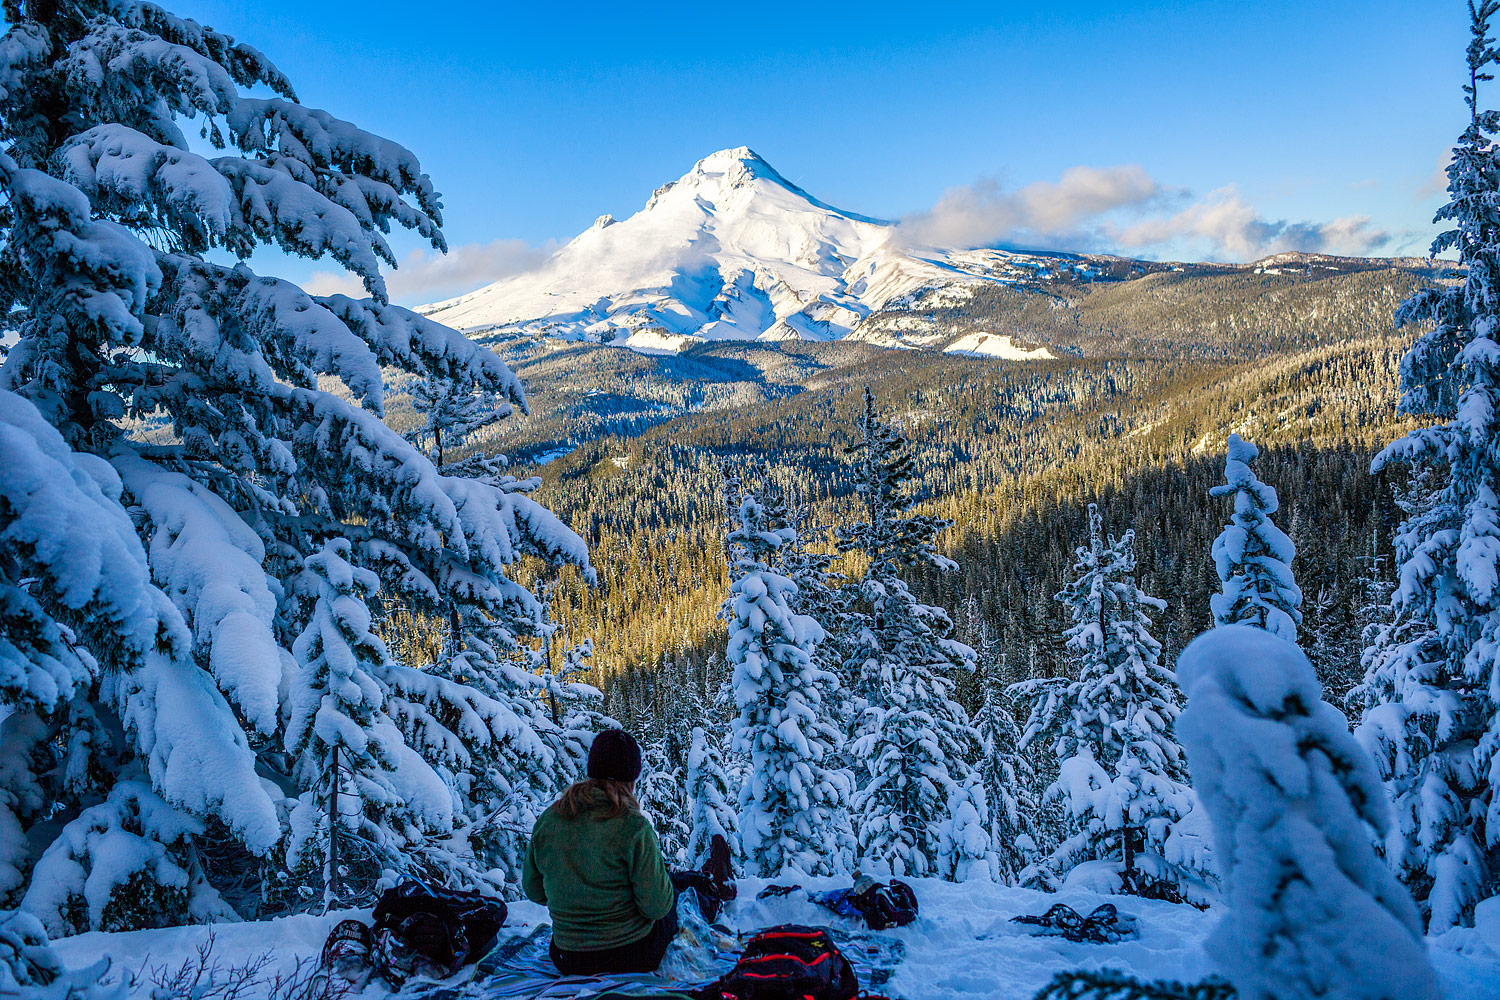 Picnic with a view of Mt Hood, Oregon